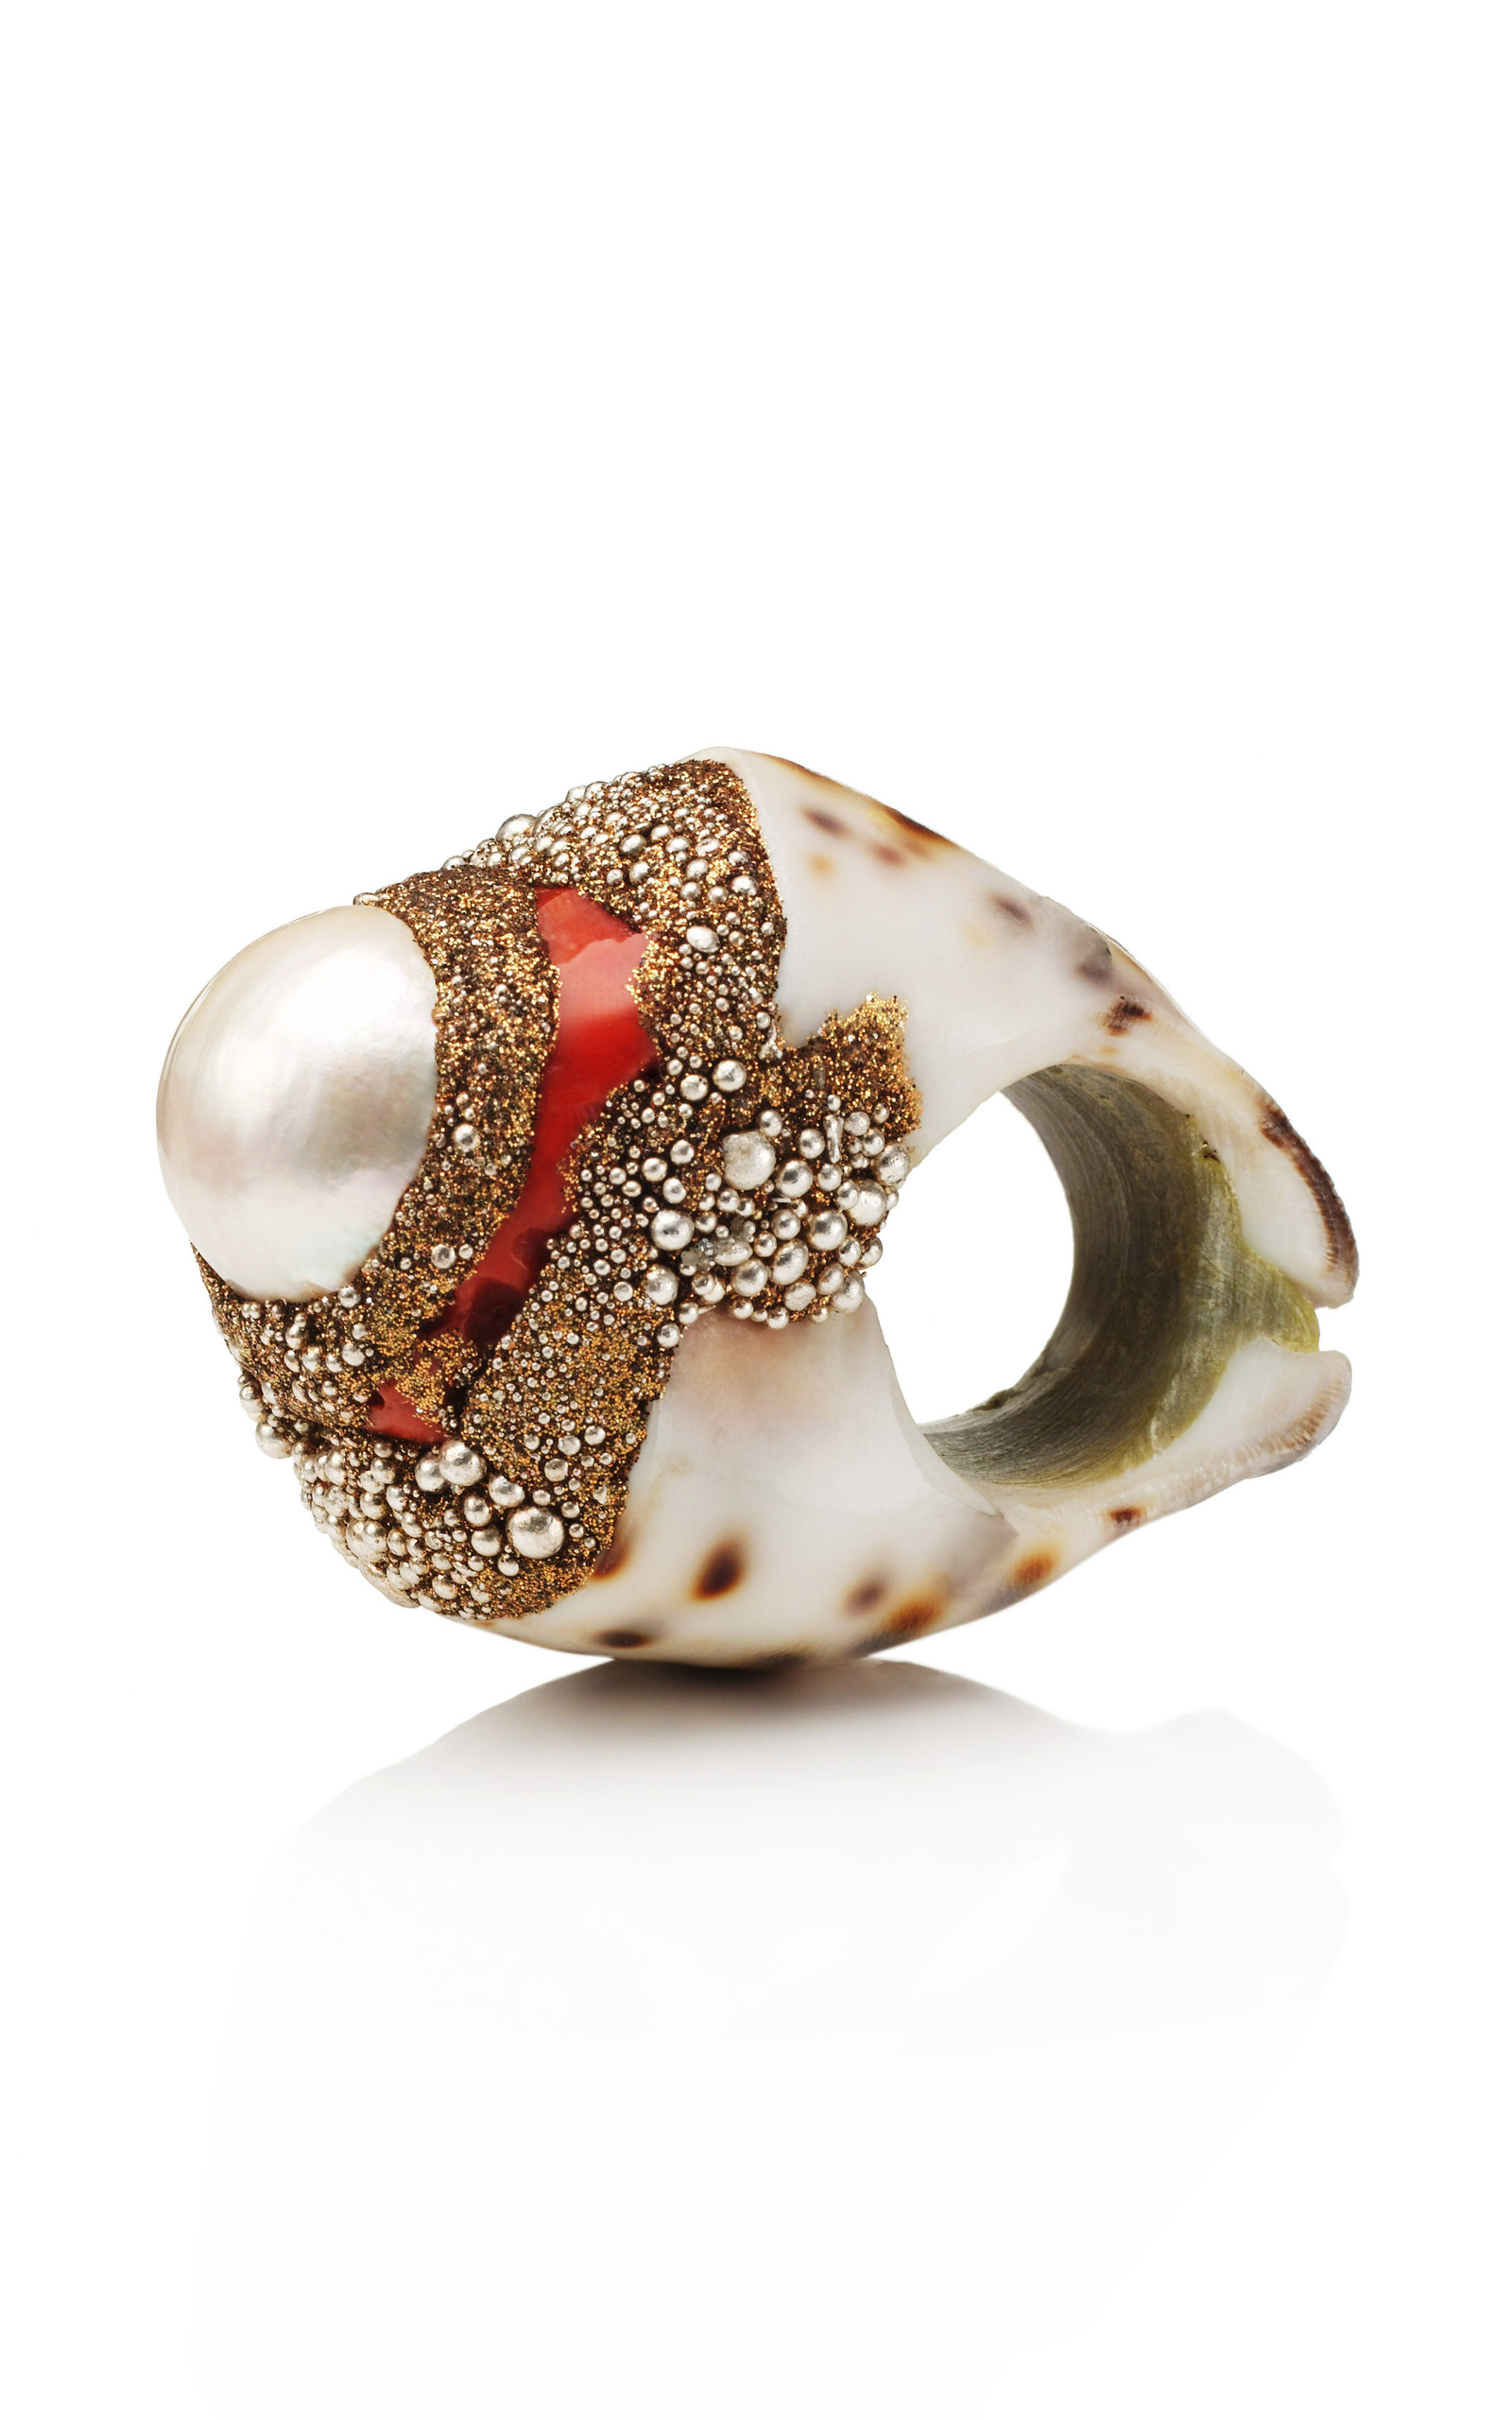 oneofakind emerald david druckenmiller lyst fd diamond rings jewelry product multi gold gallery by ring fiona webb coral